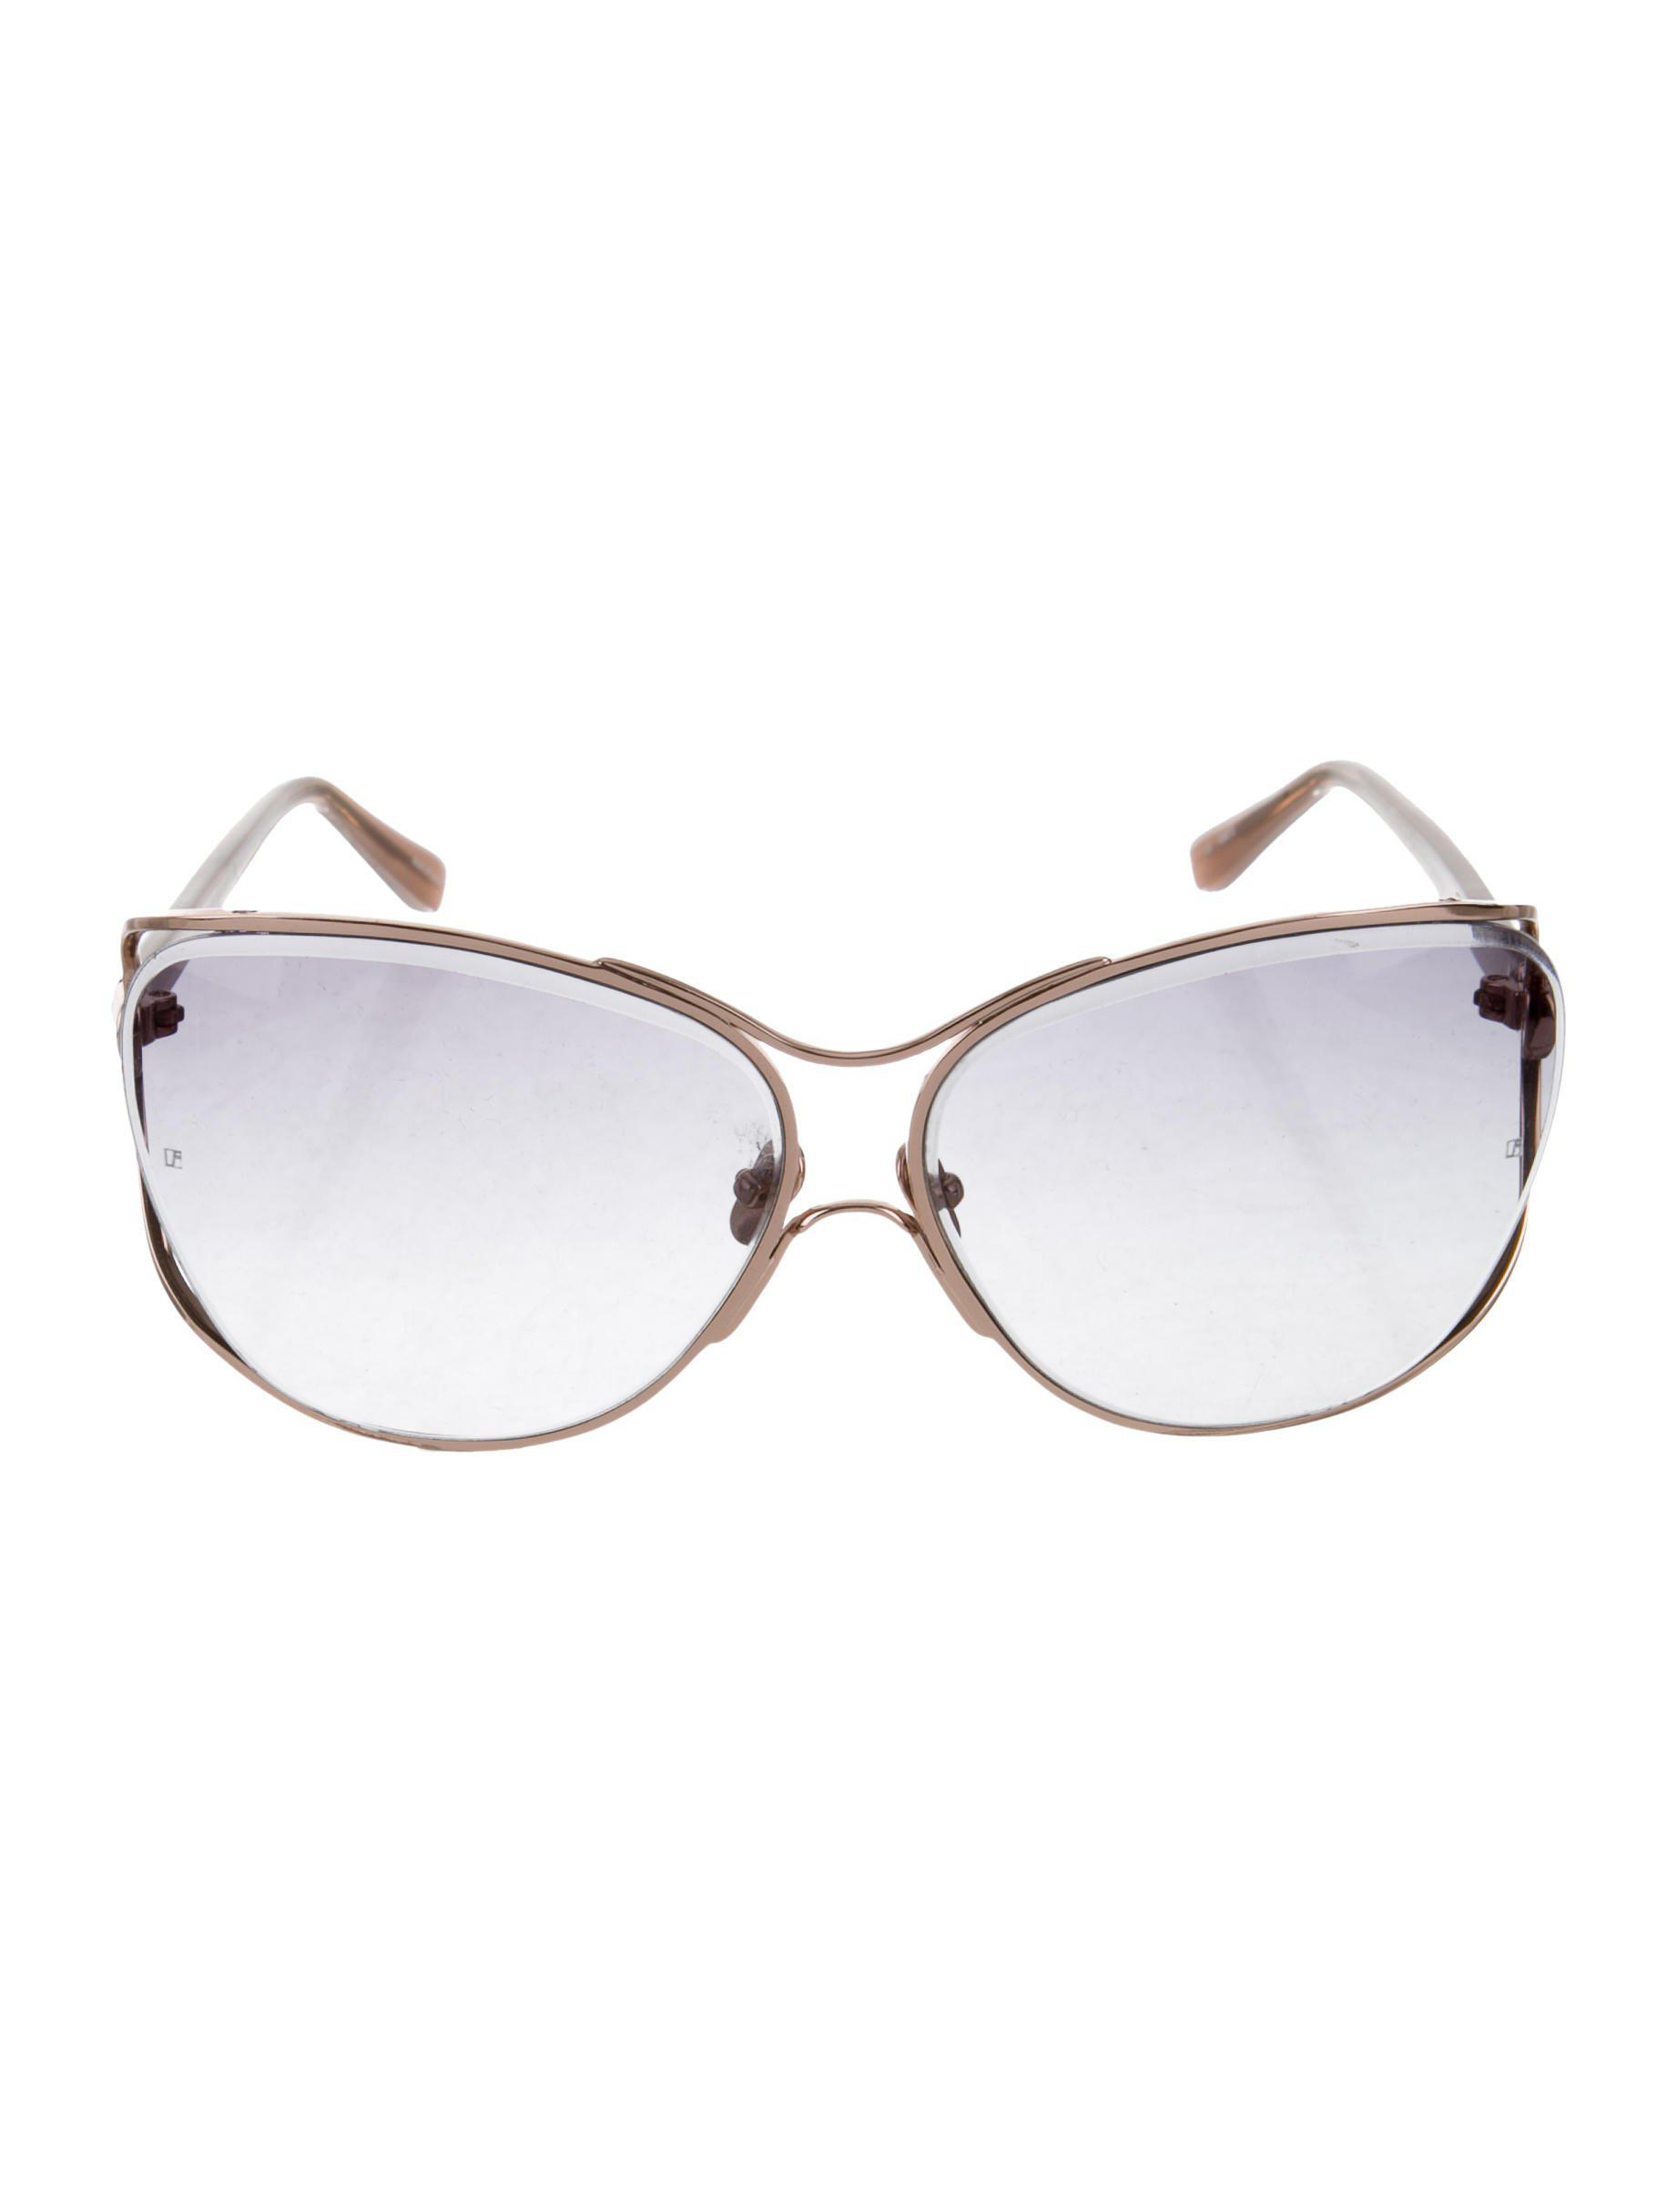 26a5a6d9af07 Lyst - Linda Farrow Oversize Tinted Sunglasses Gold in Metallic